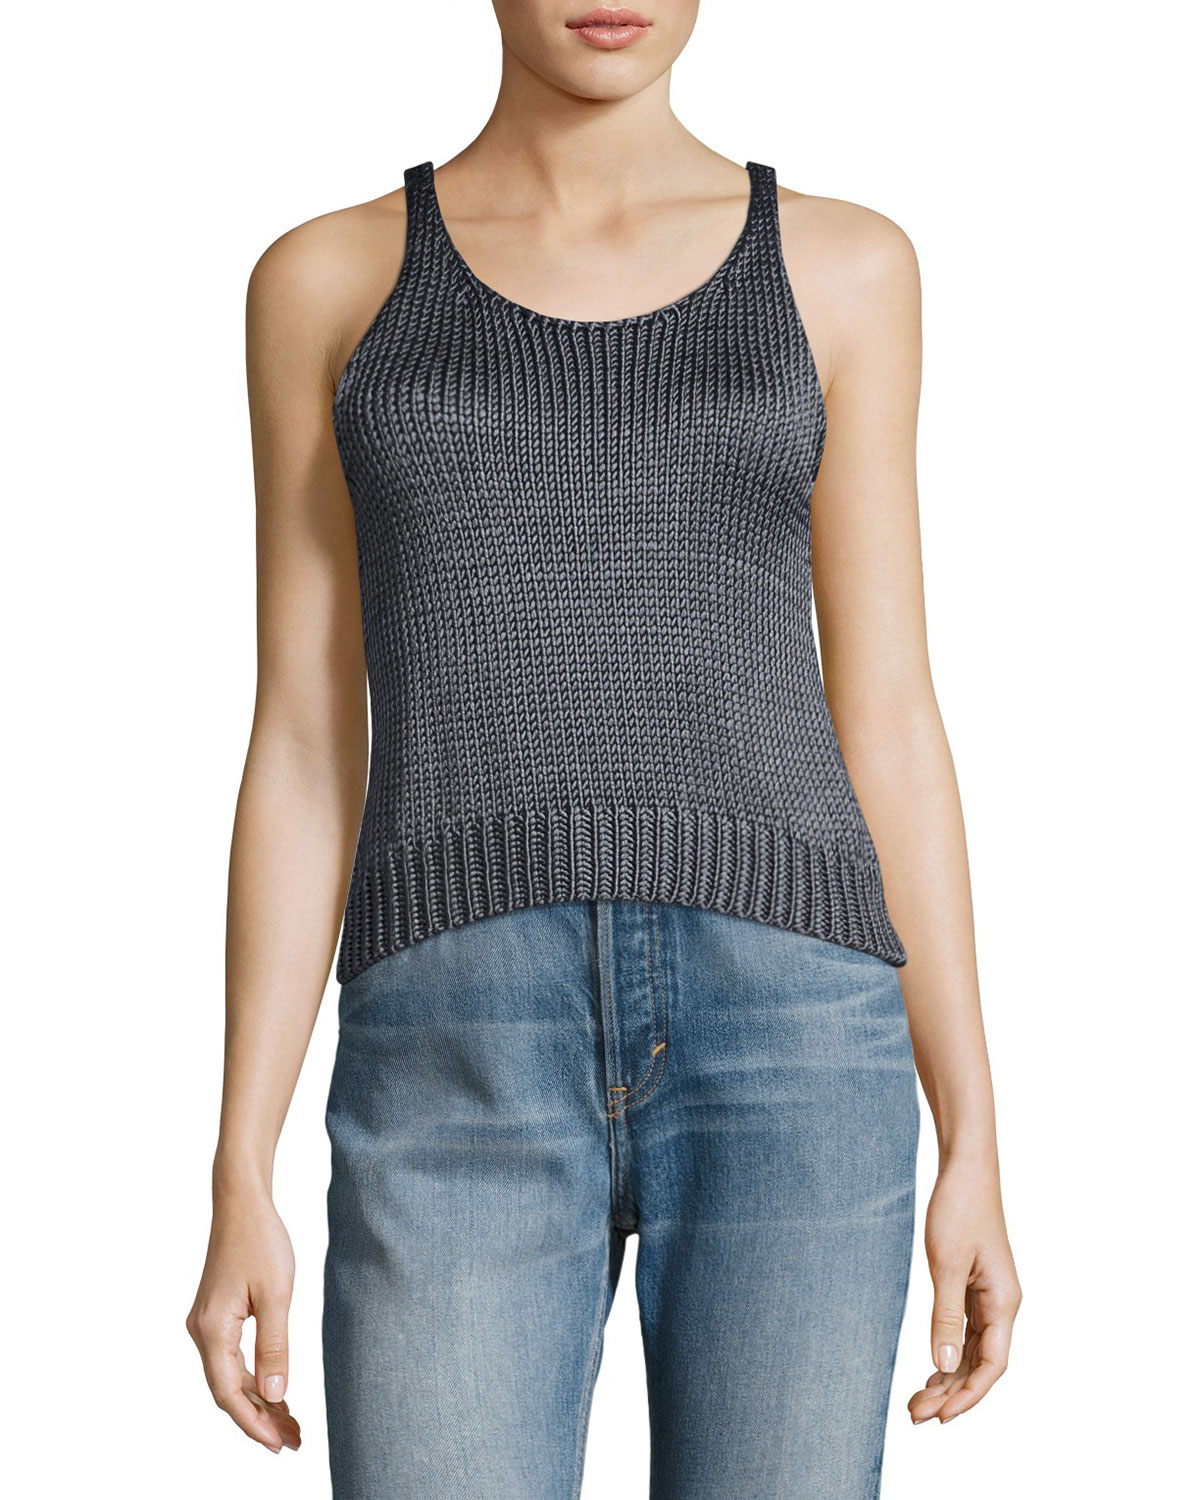 Clearance Online Fake Vince Cable-Knit Silk Crop Tank Top Cheap Sale Best Seller Prices Sale Online Best Place For Sale tIFUN